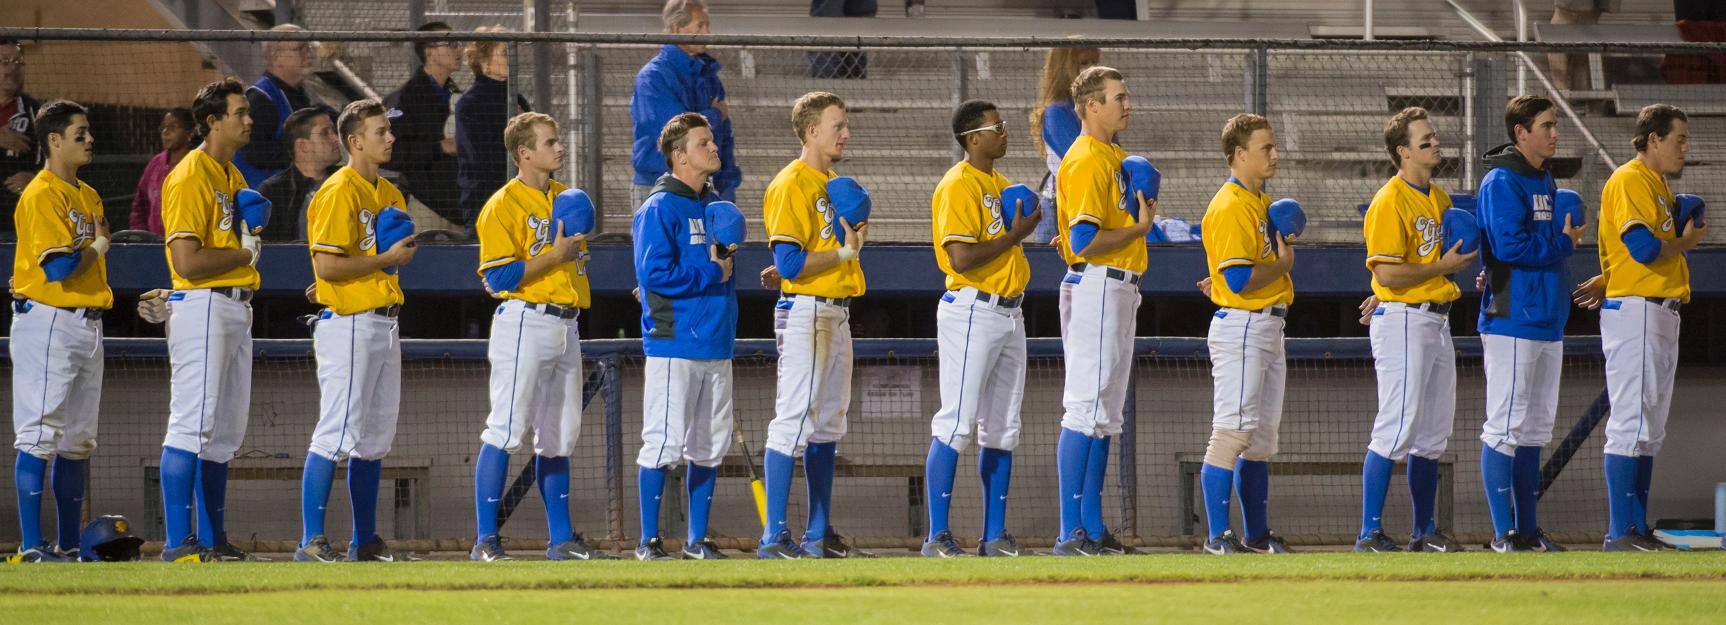 UCSB Baseball Update: Gaucho Pitchers Dealing While Fredrick, Newell Rake in Summer Leagues